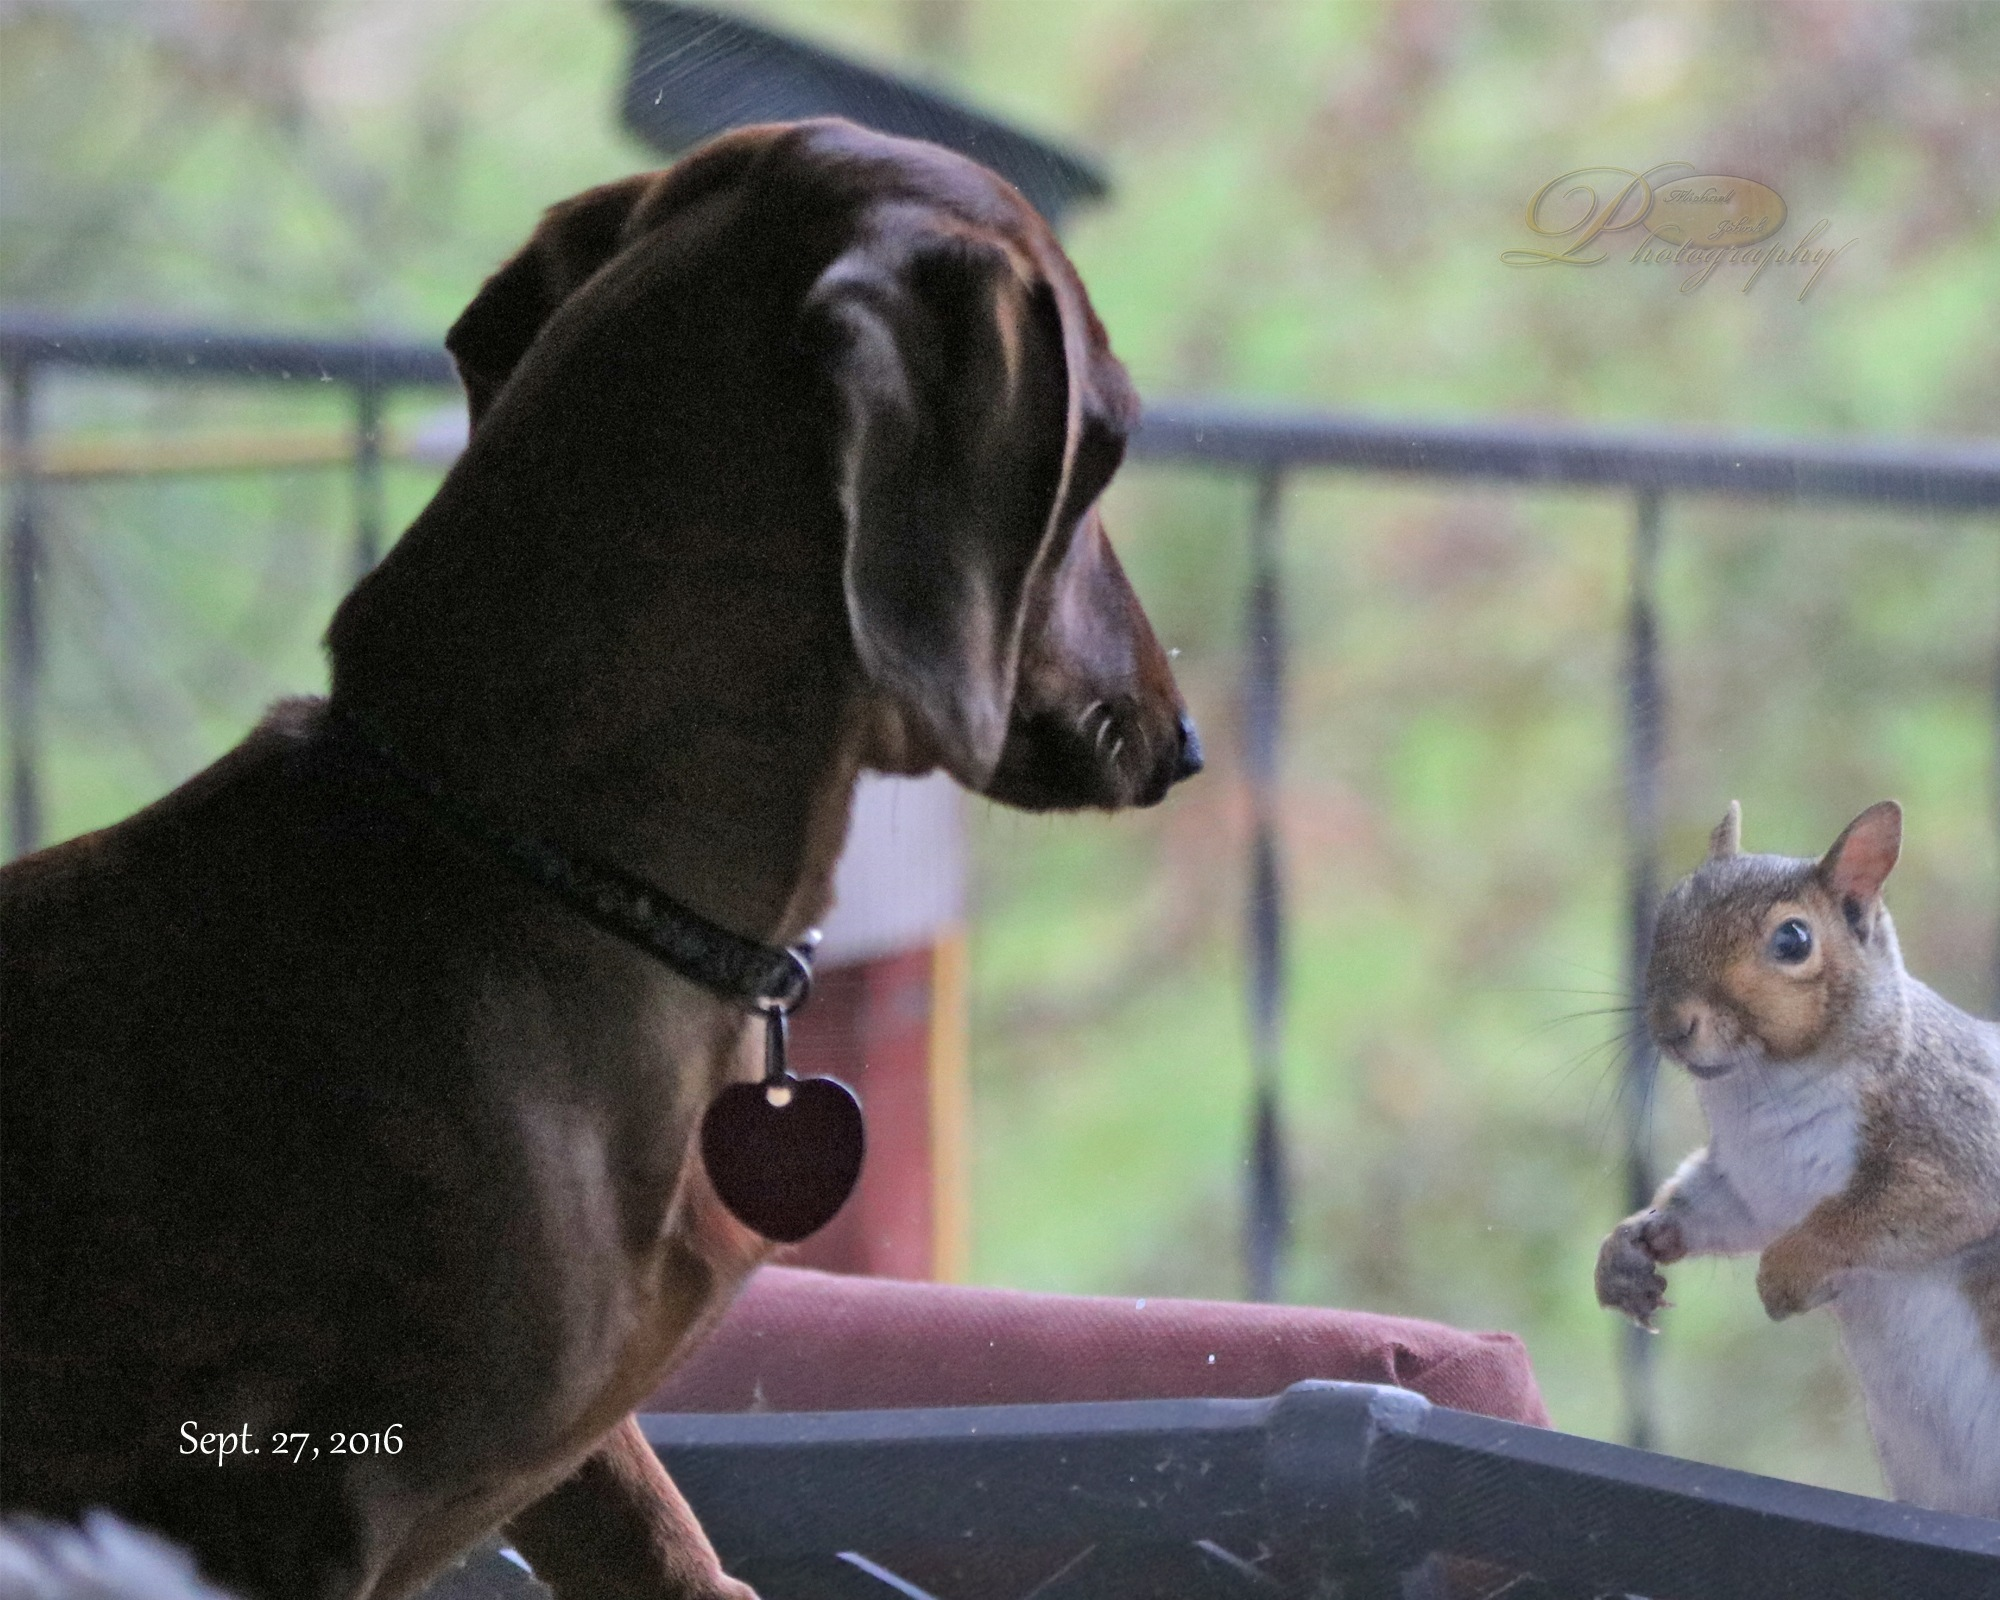 Doxie and Squirrel by Michael Johnk